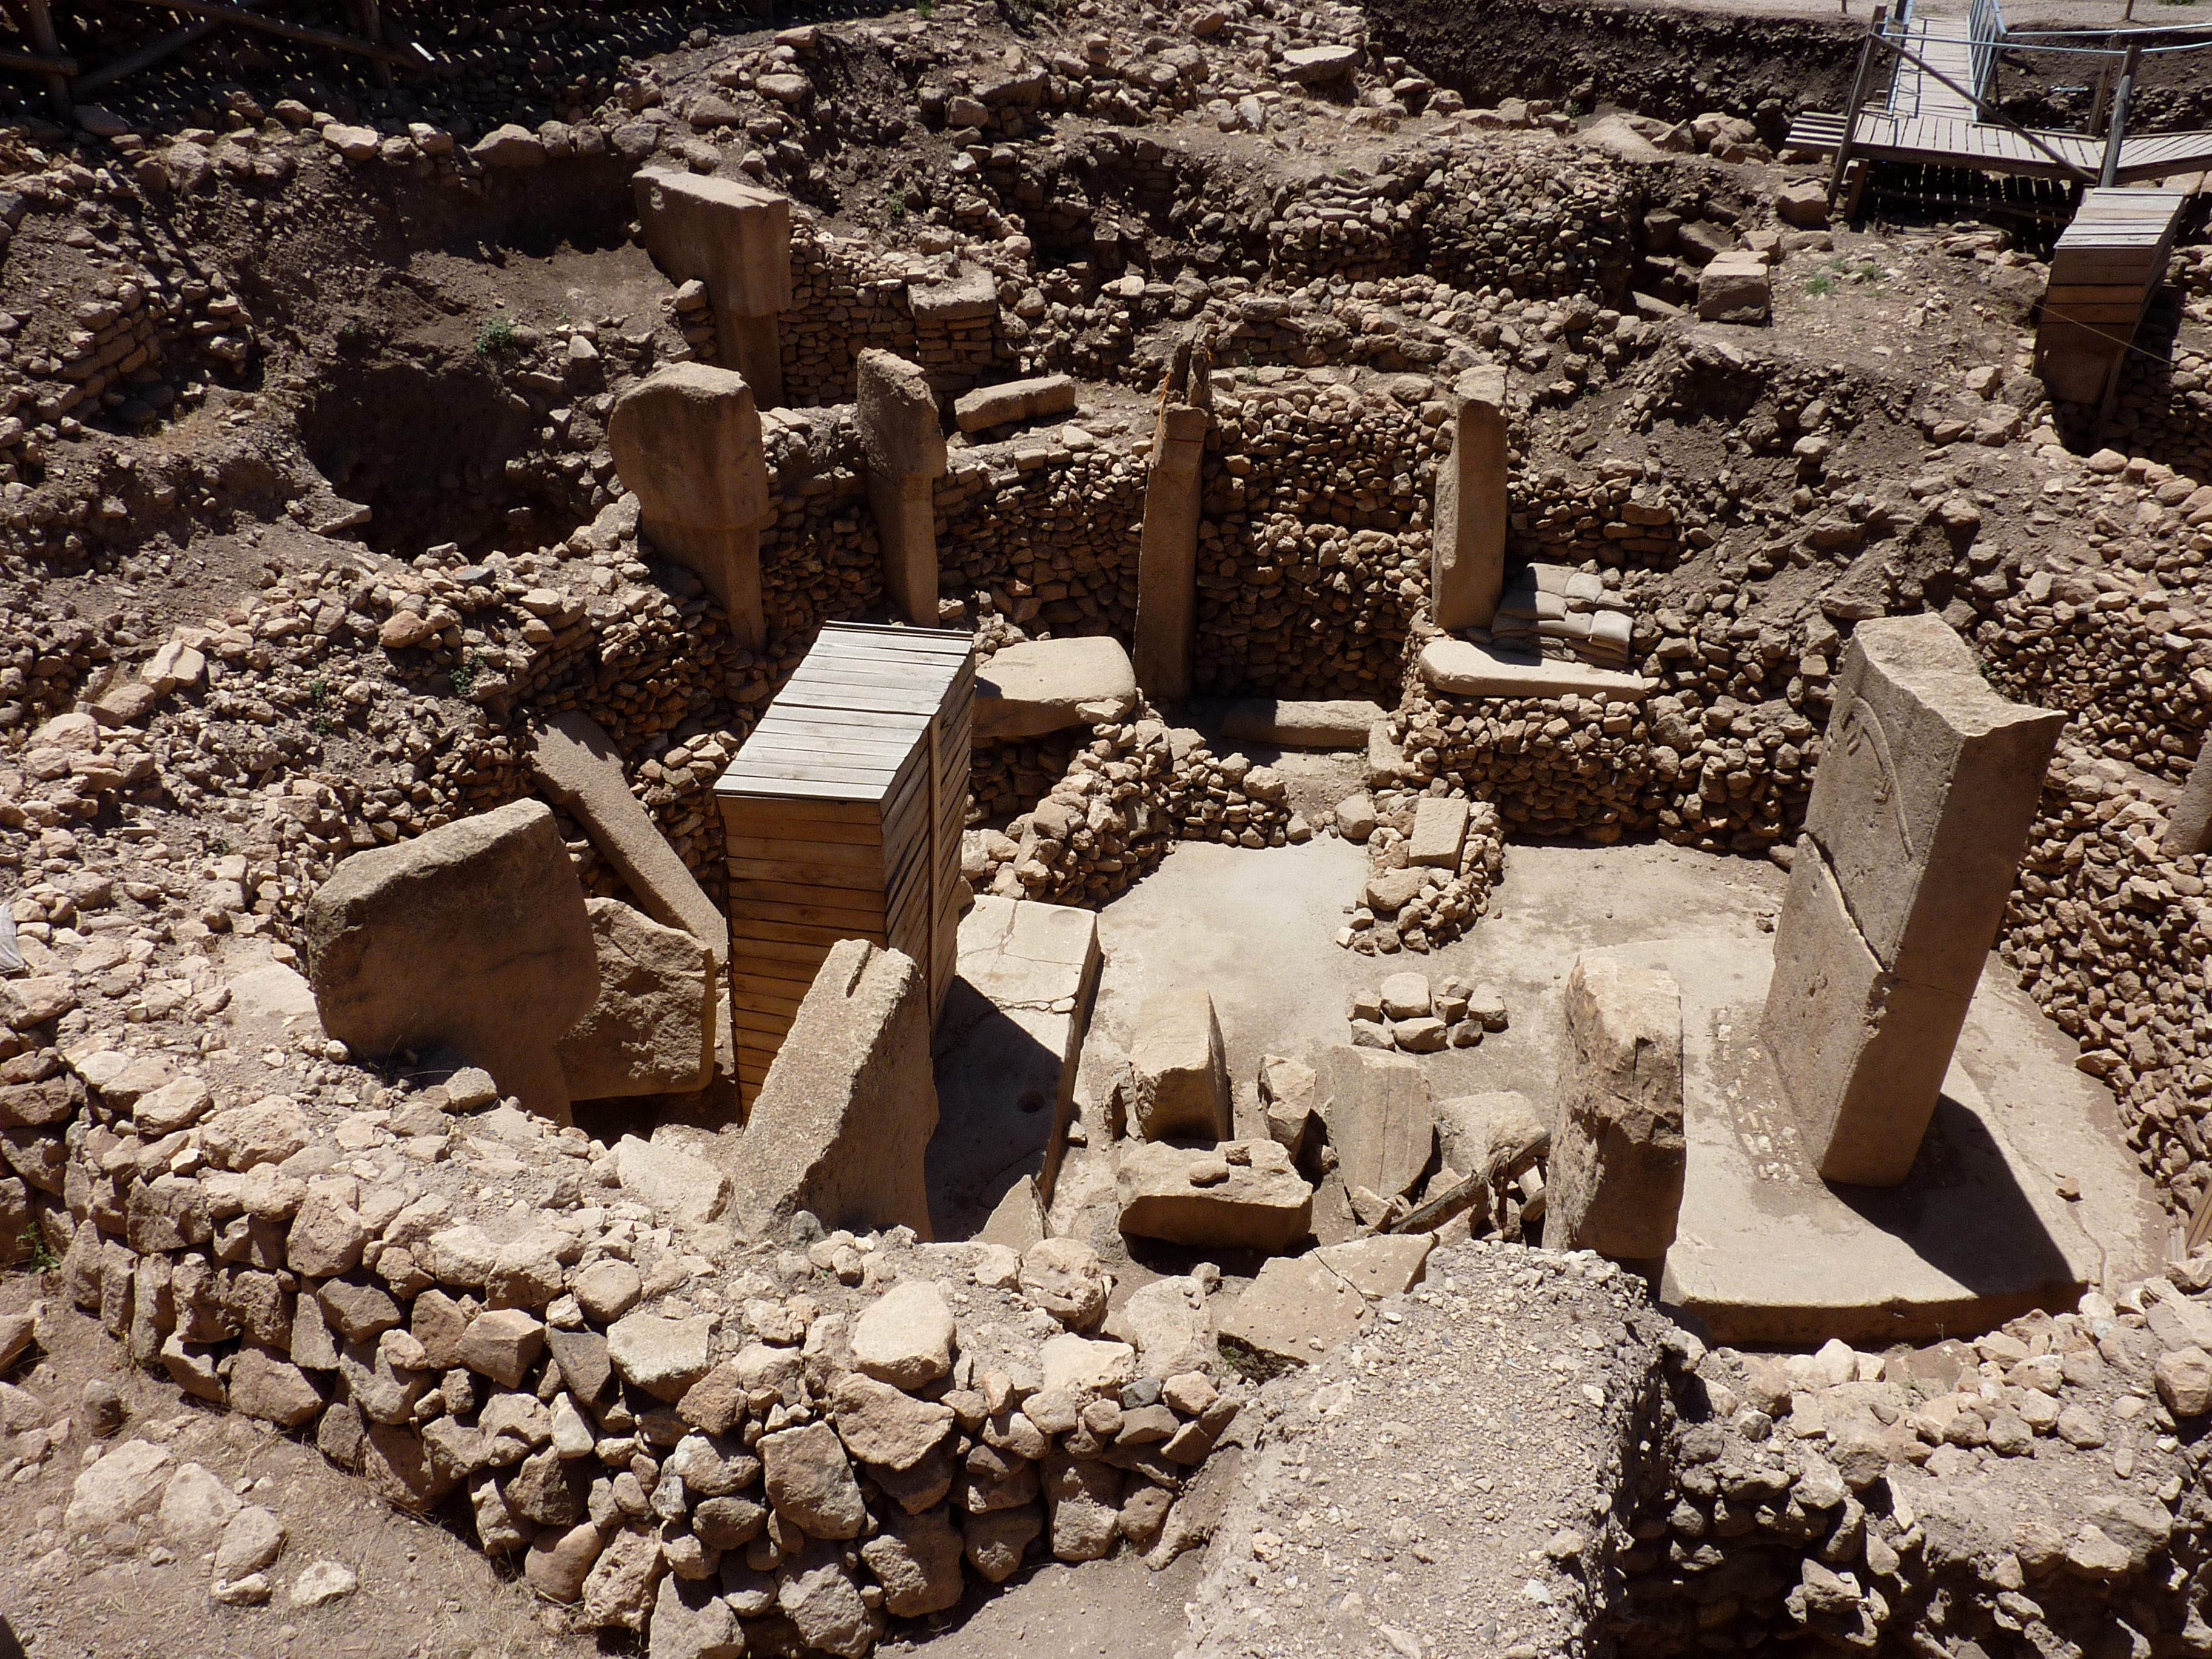 Turkish archeological site shakes up prehistory